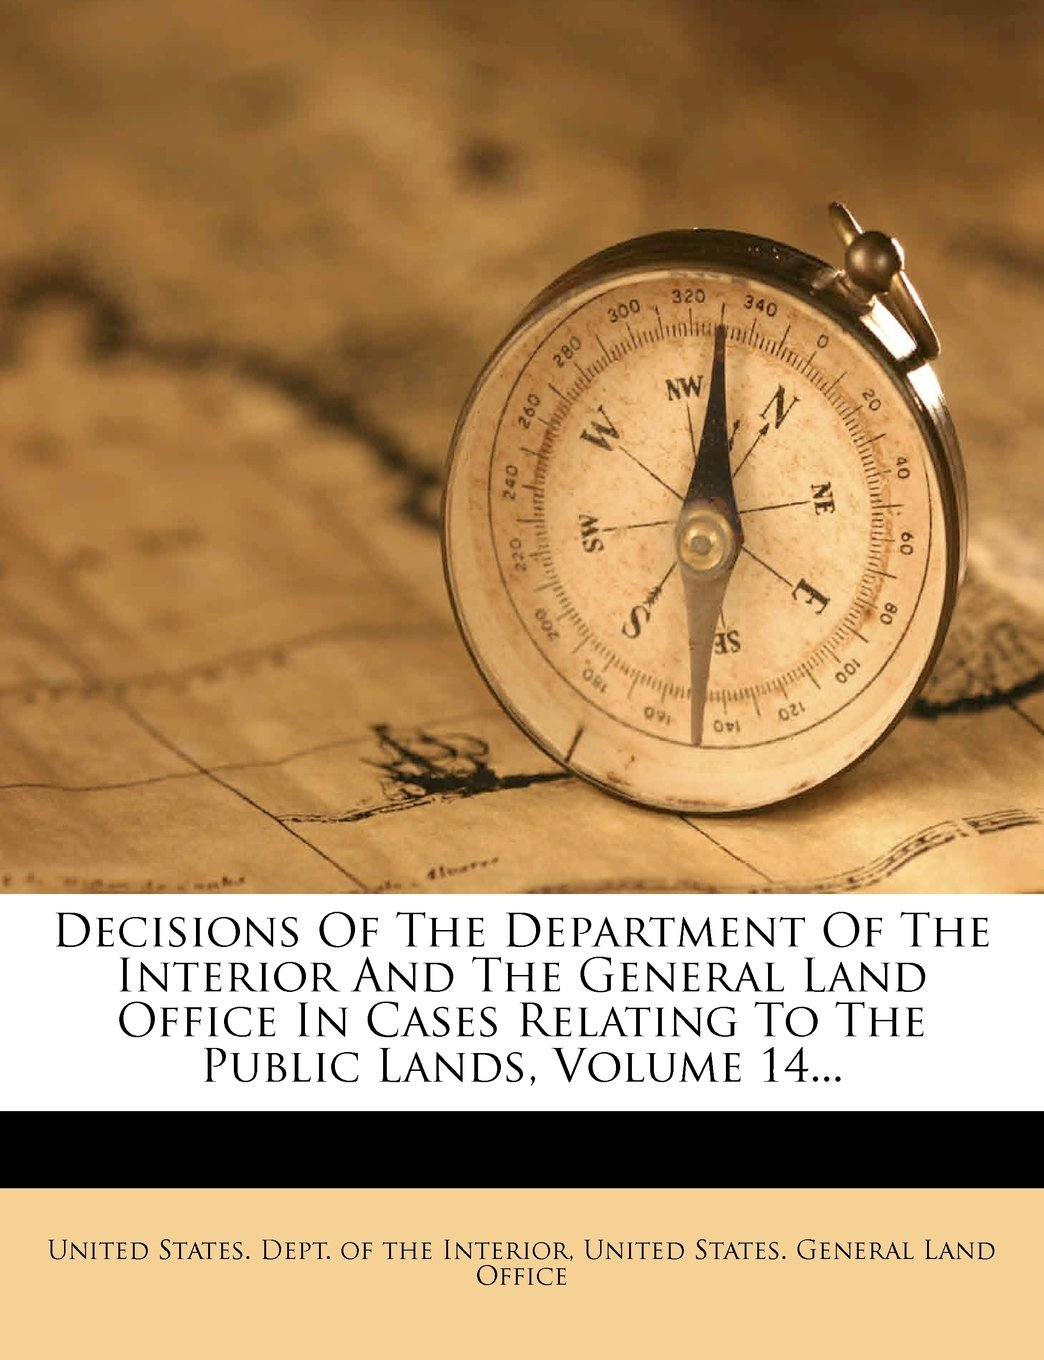 Decisions Of The Department Of The Interior And The General Land Office In Cases Relating To The Public Lands, Volume 14... pdf